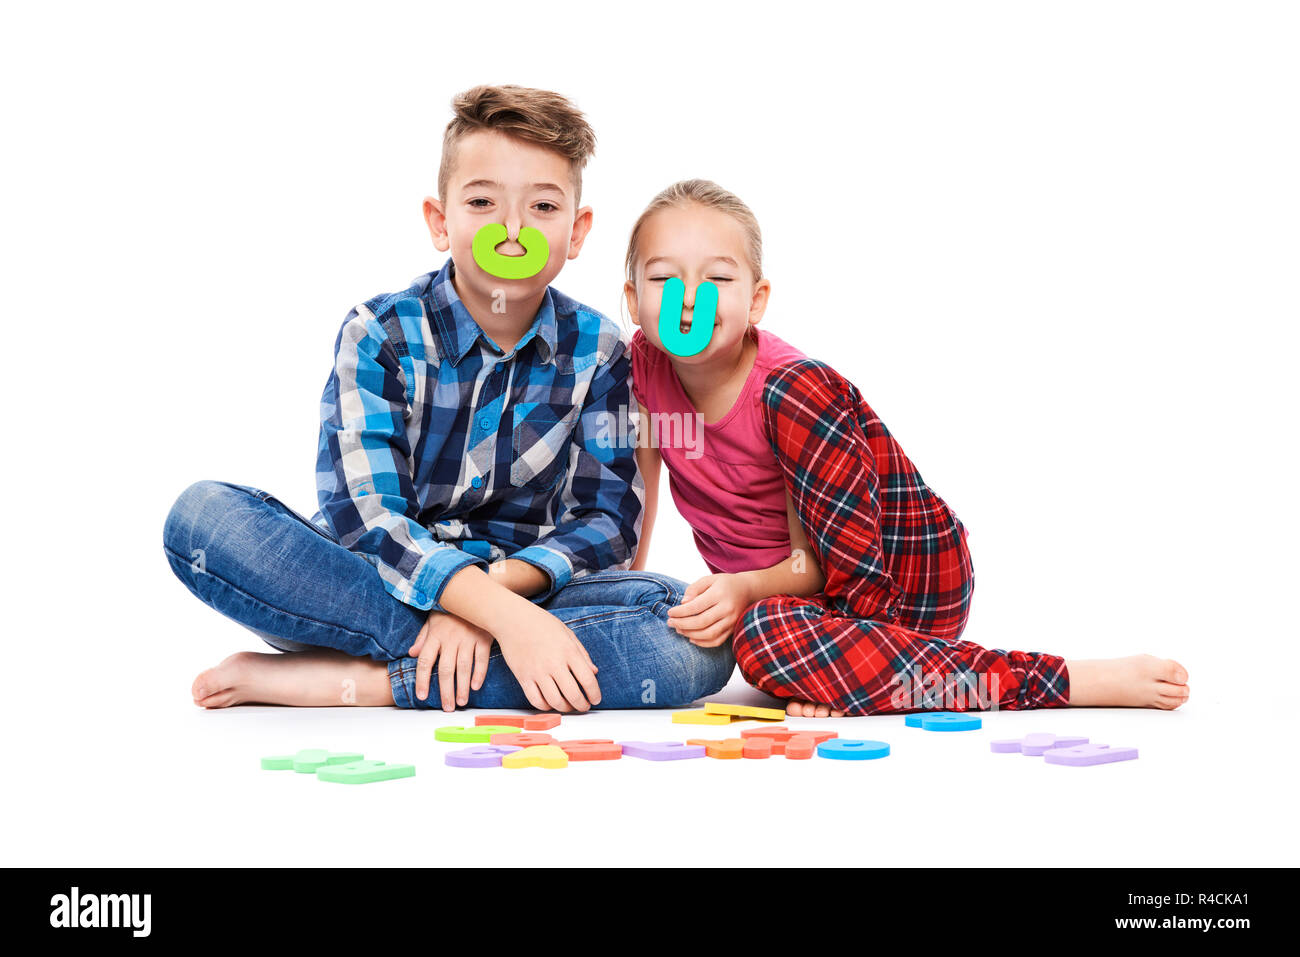 Cute children with large colorful alphabet letters on white background. Kids speech therapy concept. Speech impediment, logopedy background. - Stock Image